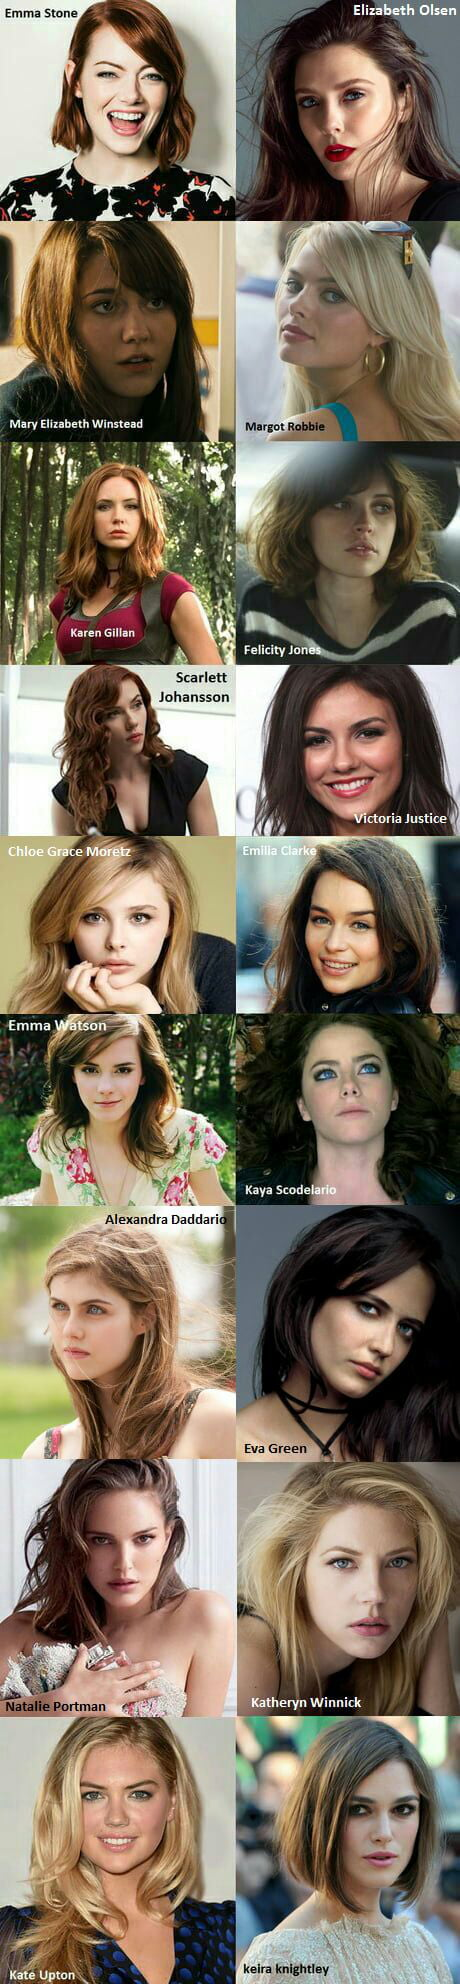 Which one is your celeb crush...??